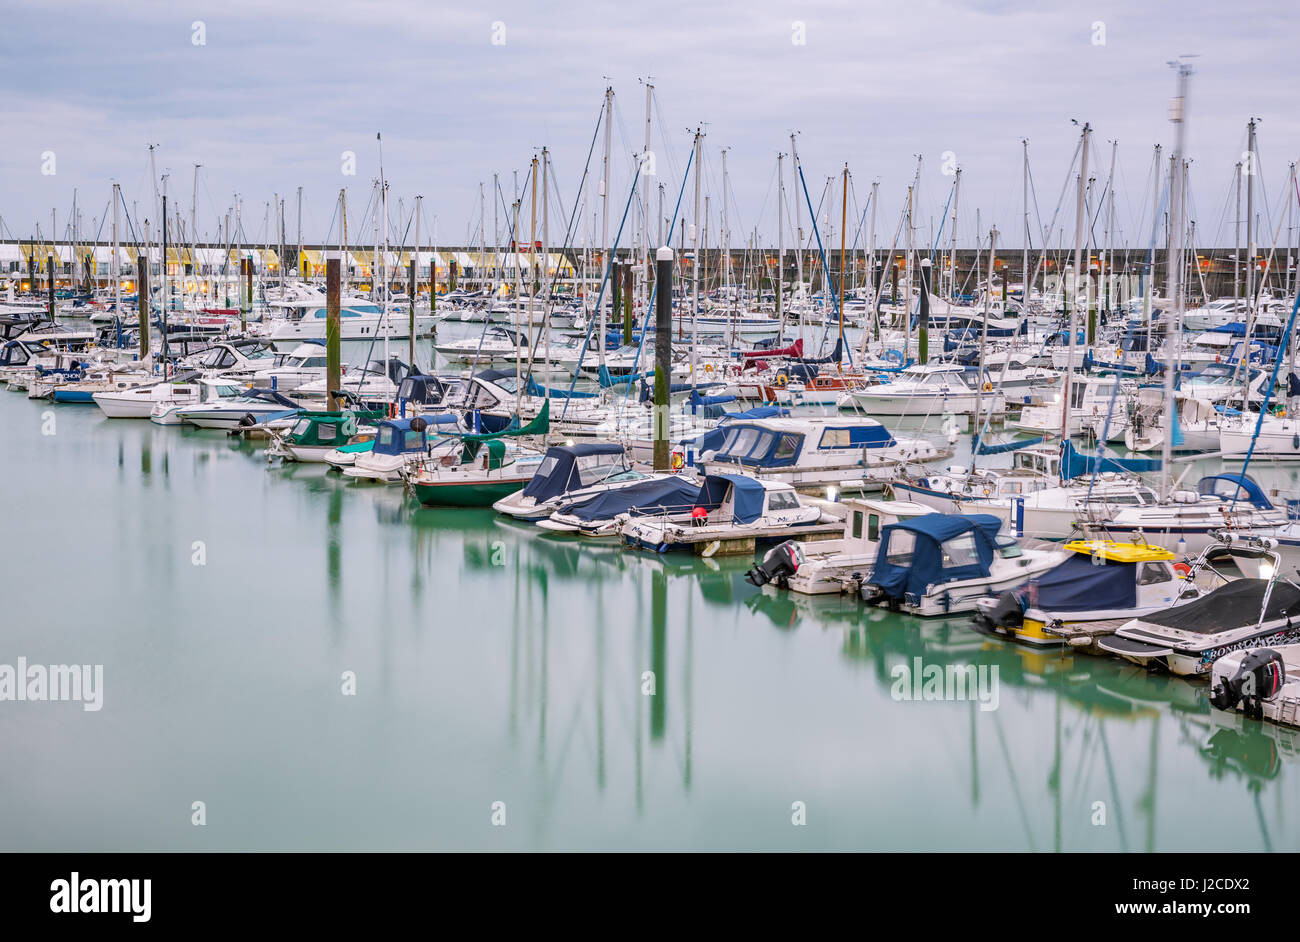 Boats, yachts, and fishing boats moored at Brighton Marina docs on a cloudy day. - Stock Image